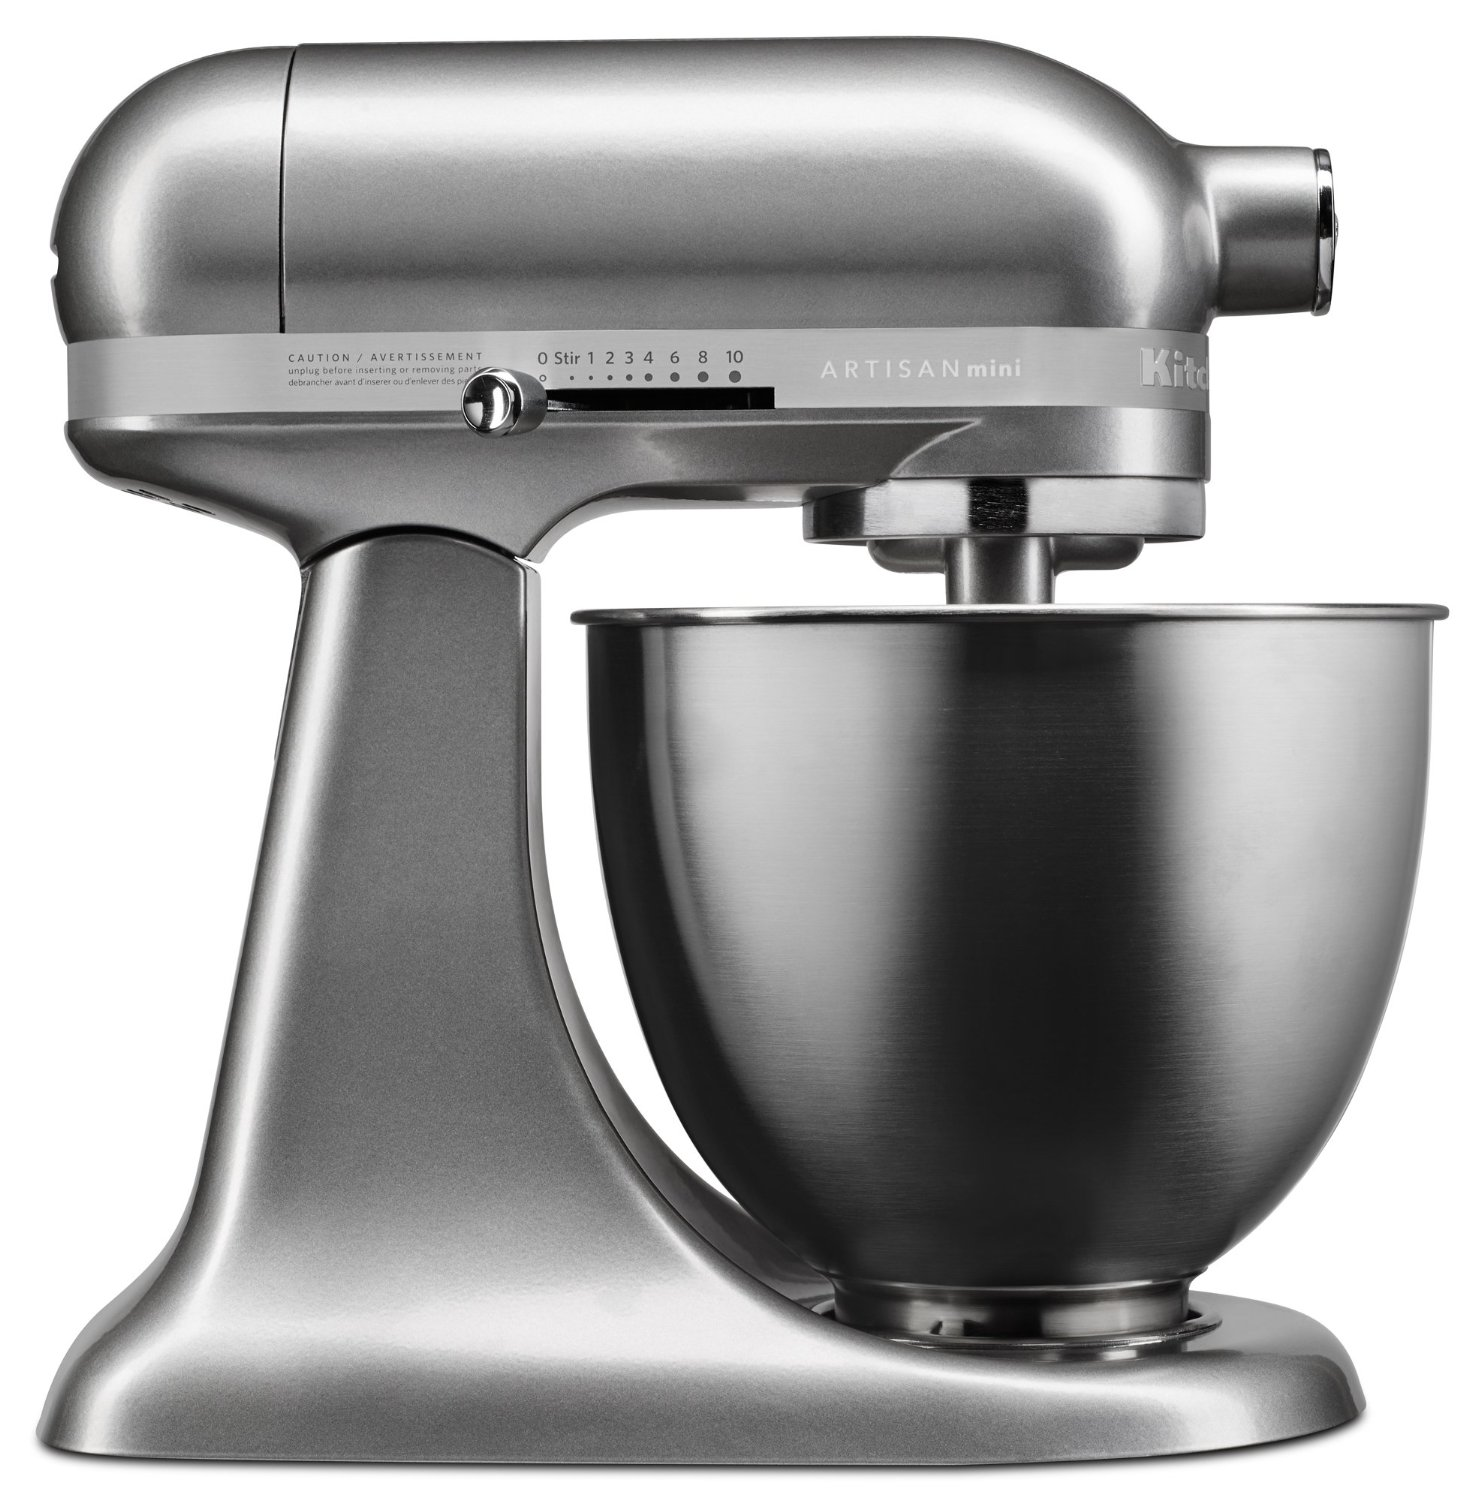 Kitchenaid 5ksm150pseac Artisan K C3 Bcchenmaschine Candy Apple